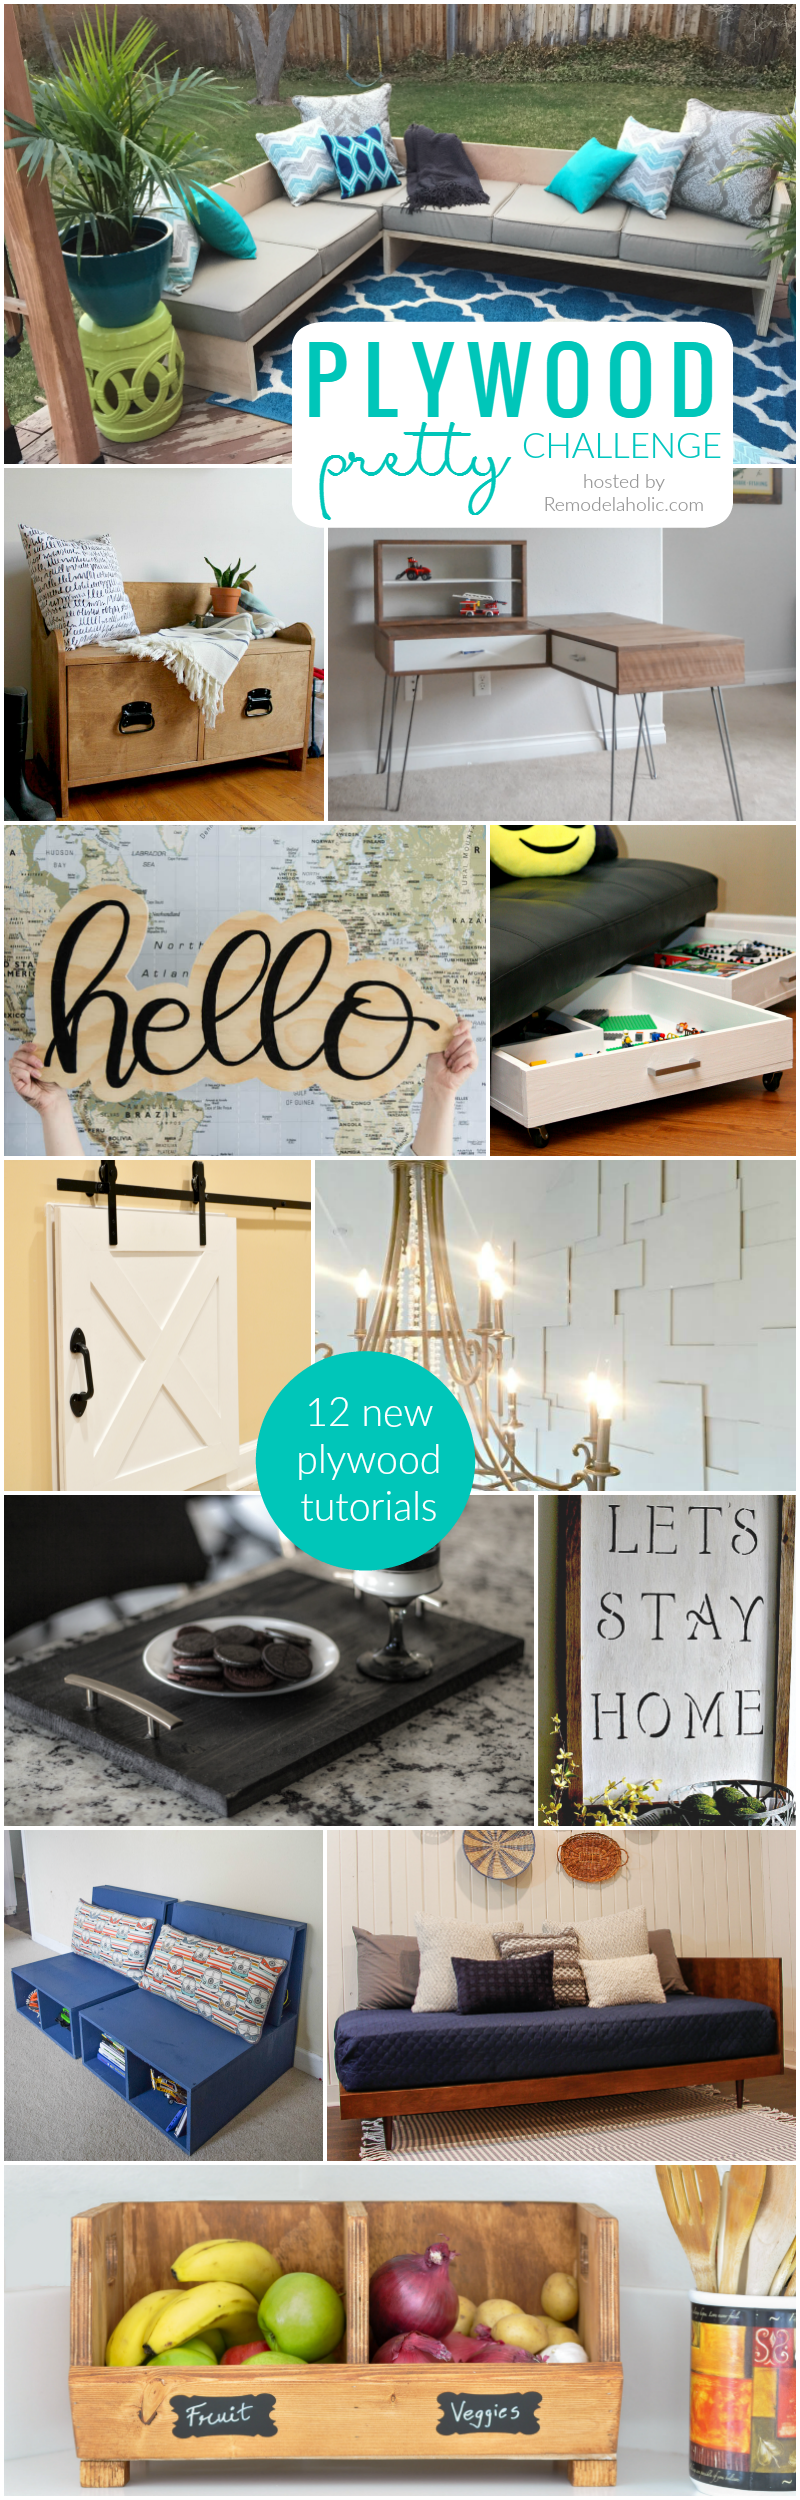 The #PlywoodPretty Challenge: Create anything with plywood. One condition: It has to be amazing. 12 new plywood tutorials for home decor and organizing.